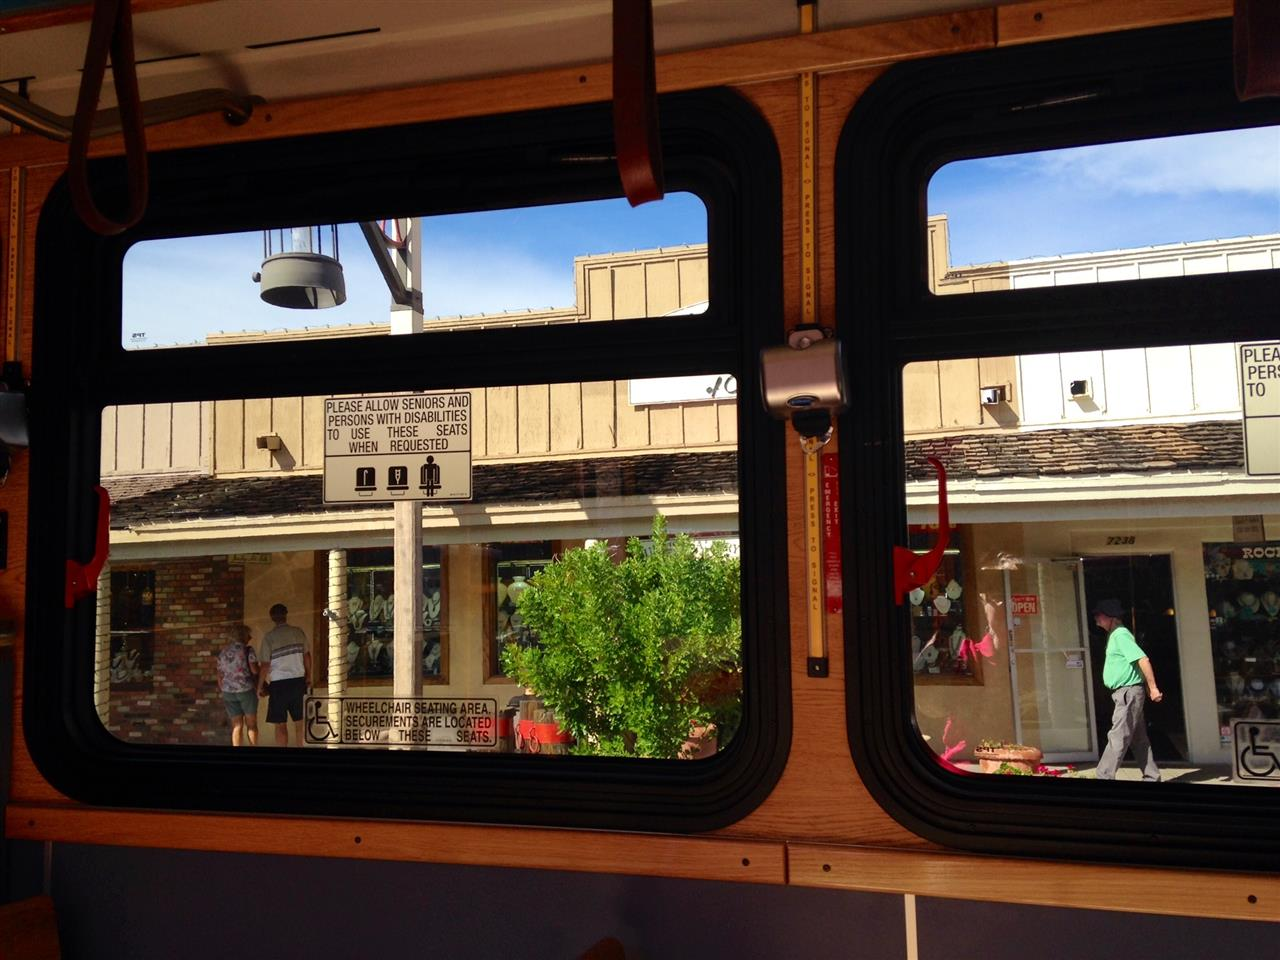 Take a free trolley ride to explore downtown #Scottsdale#Arizona